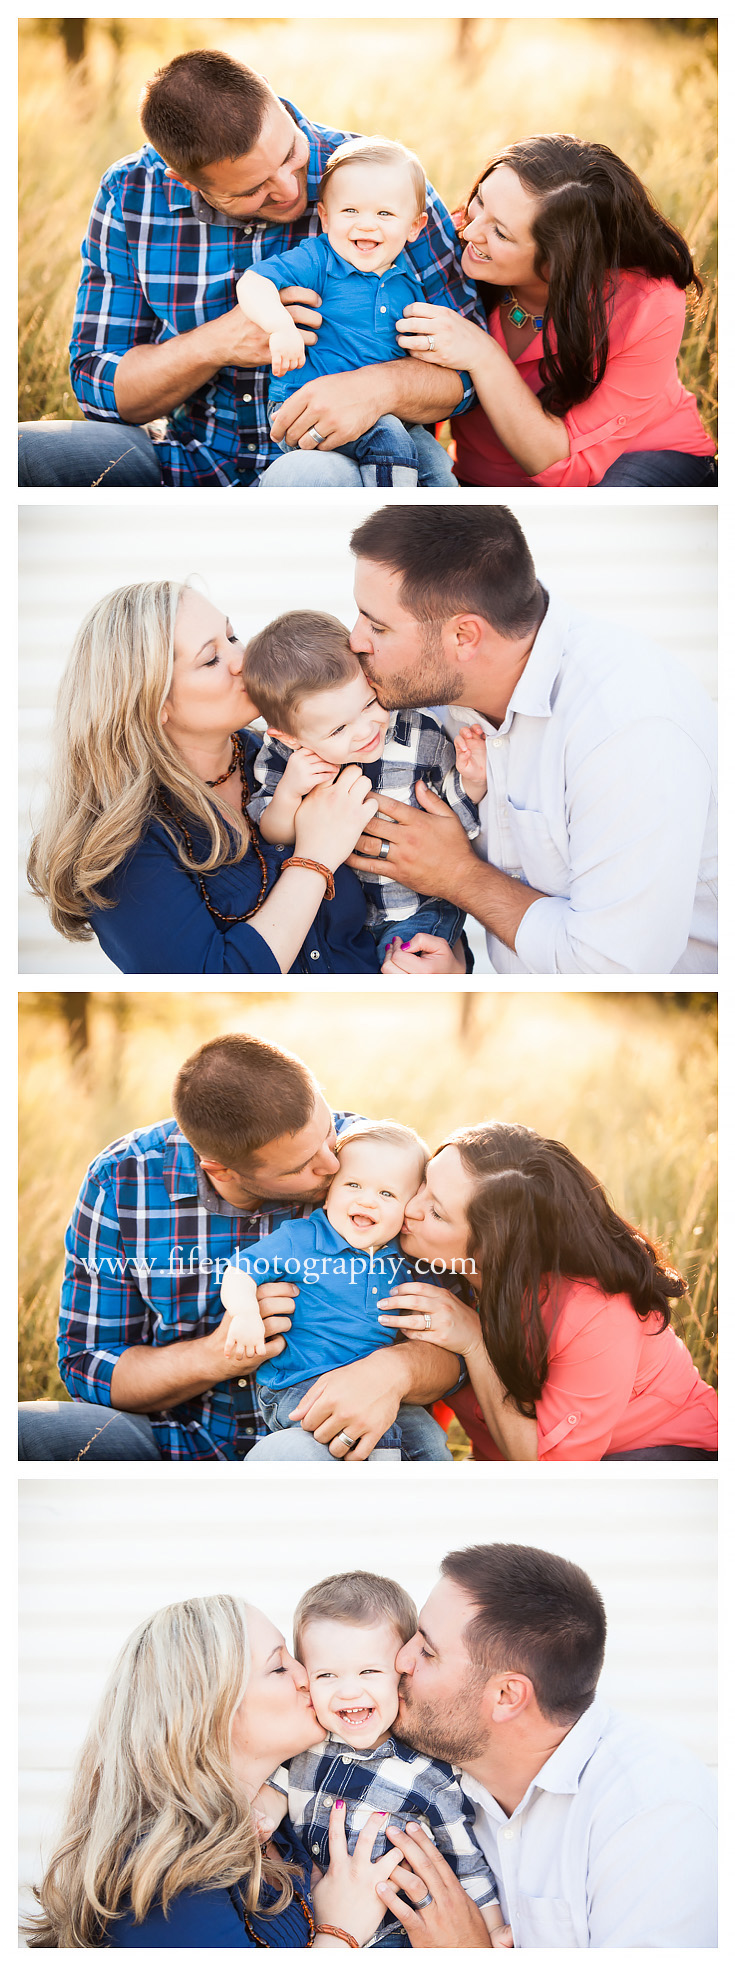 Children Photography, family Photography in Norman, Oklahoma